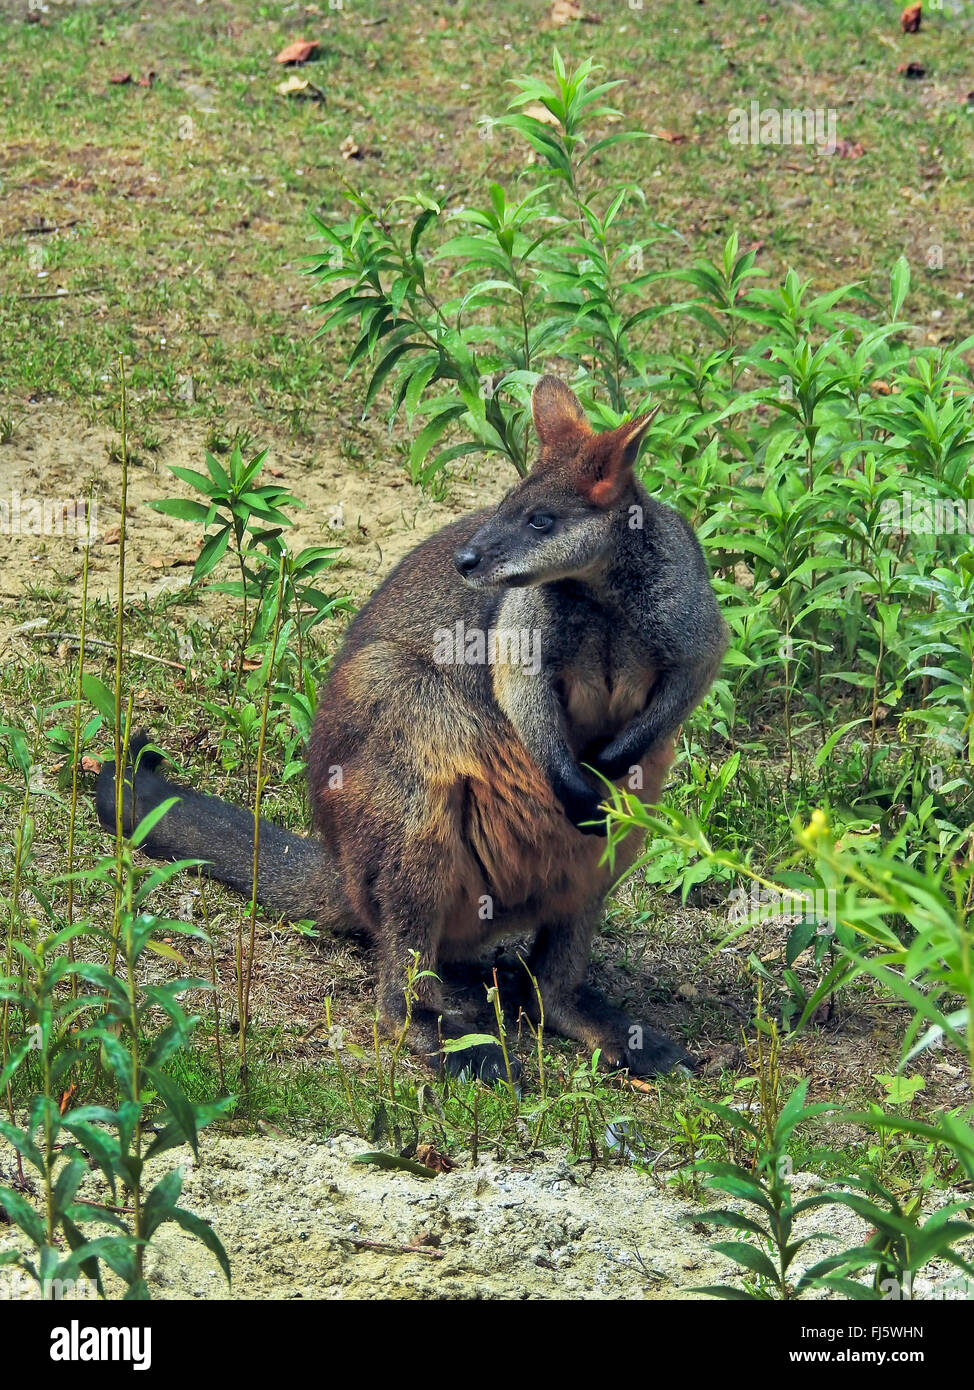 swamp wallaby, black-tail wallaby (Wallabia bicolor), side glance Stock Photo